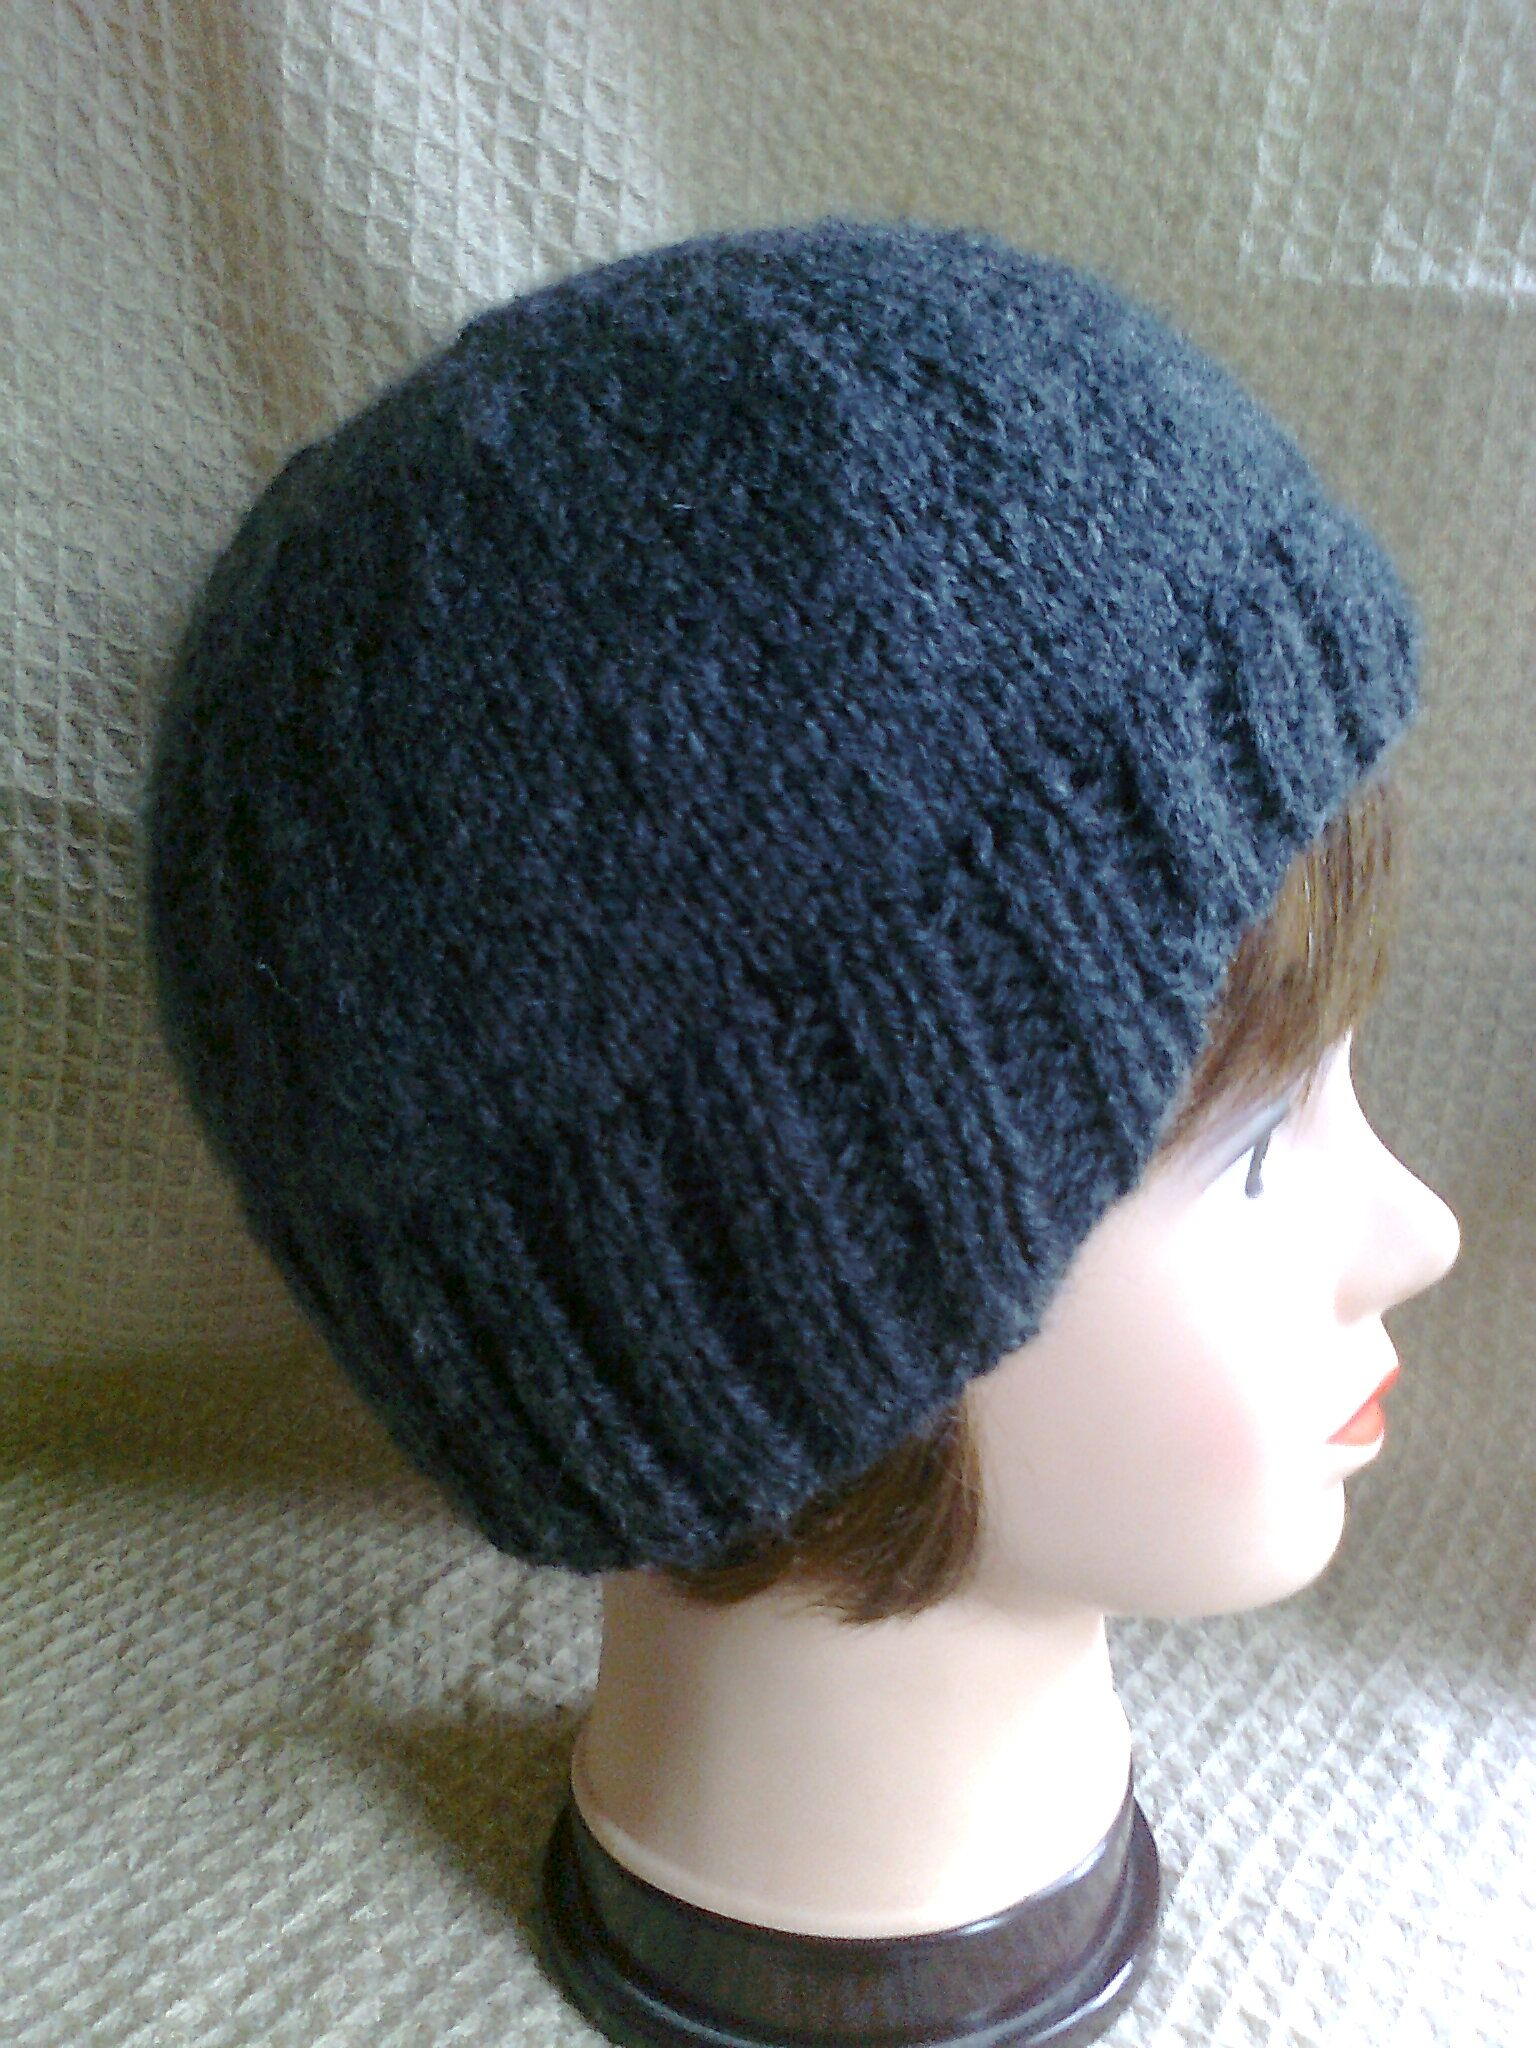 Unisex Beanie with a Ribbed Edging to cover ears.